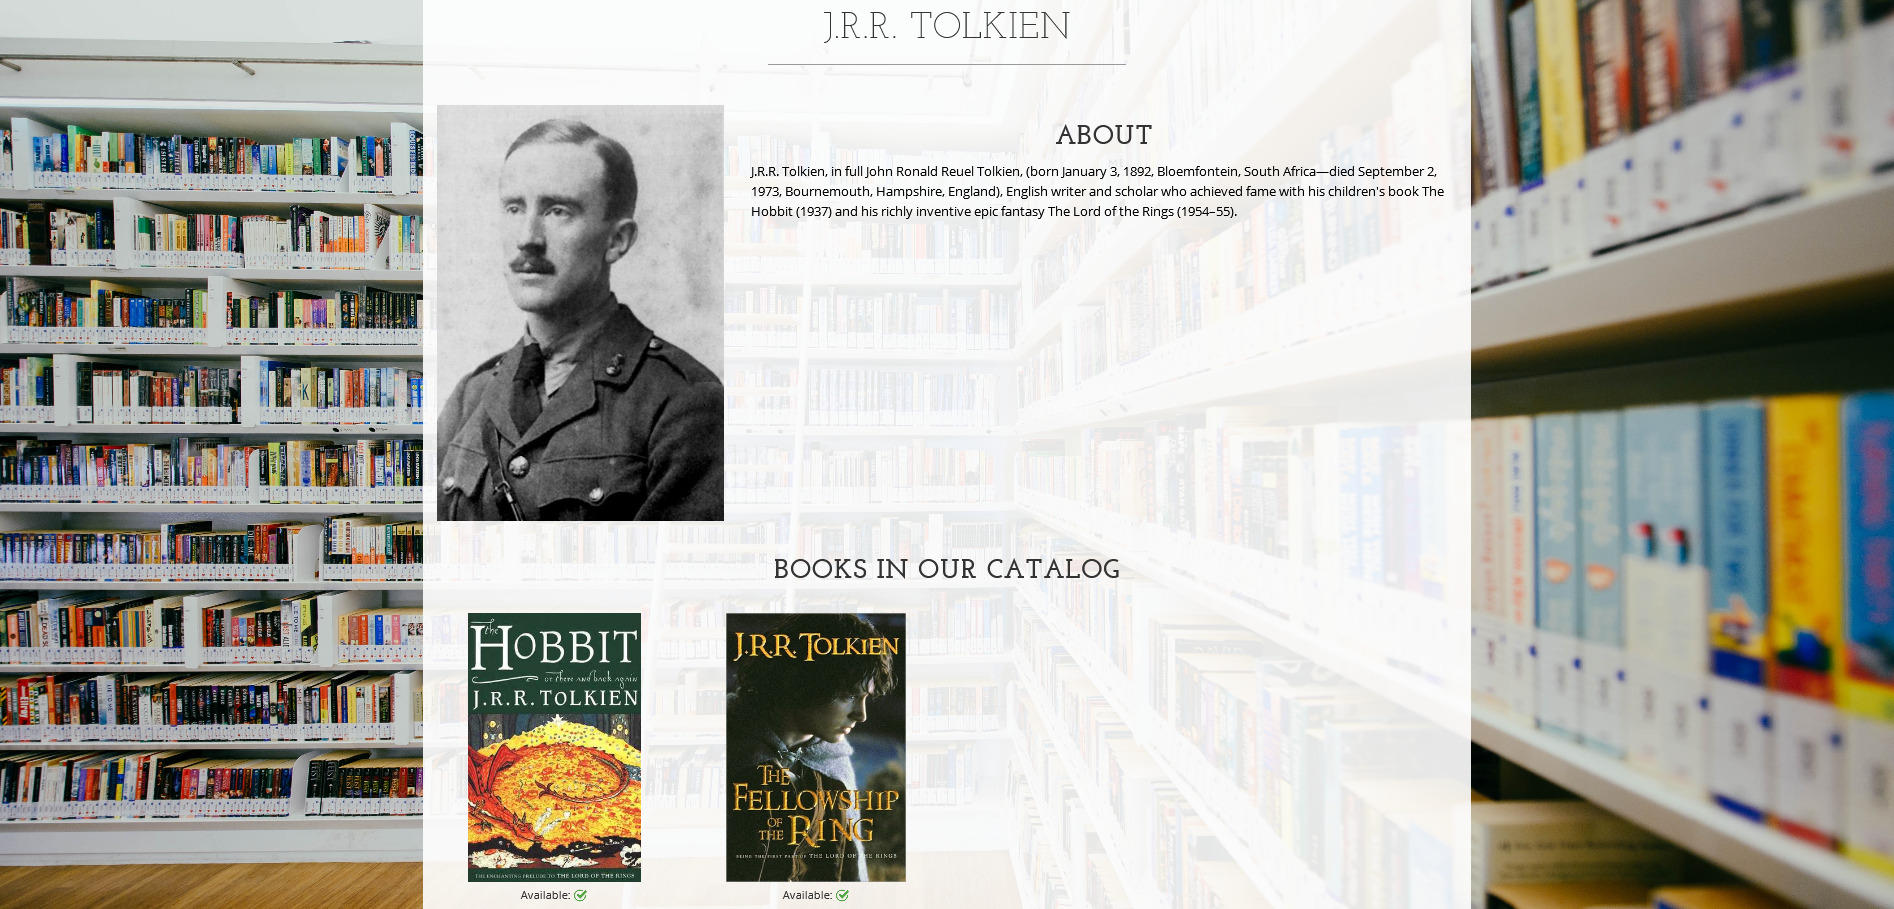 a page with the profile of an author and all the books by that author in the catalog